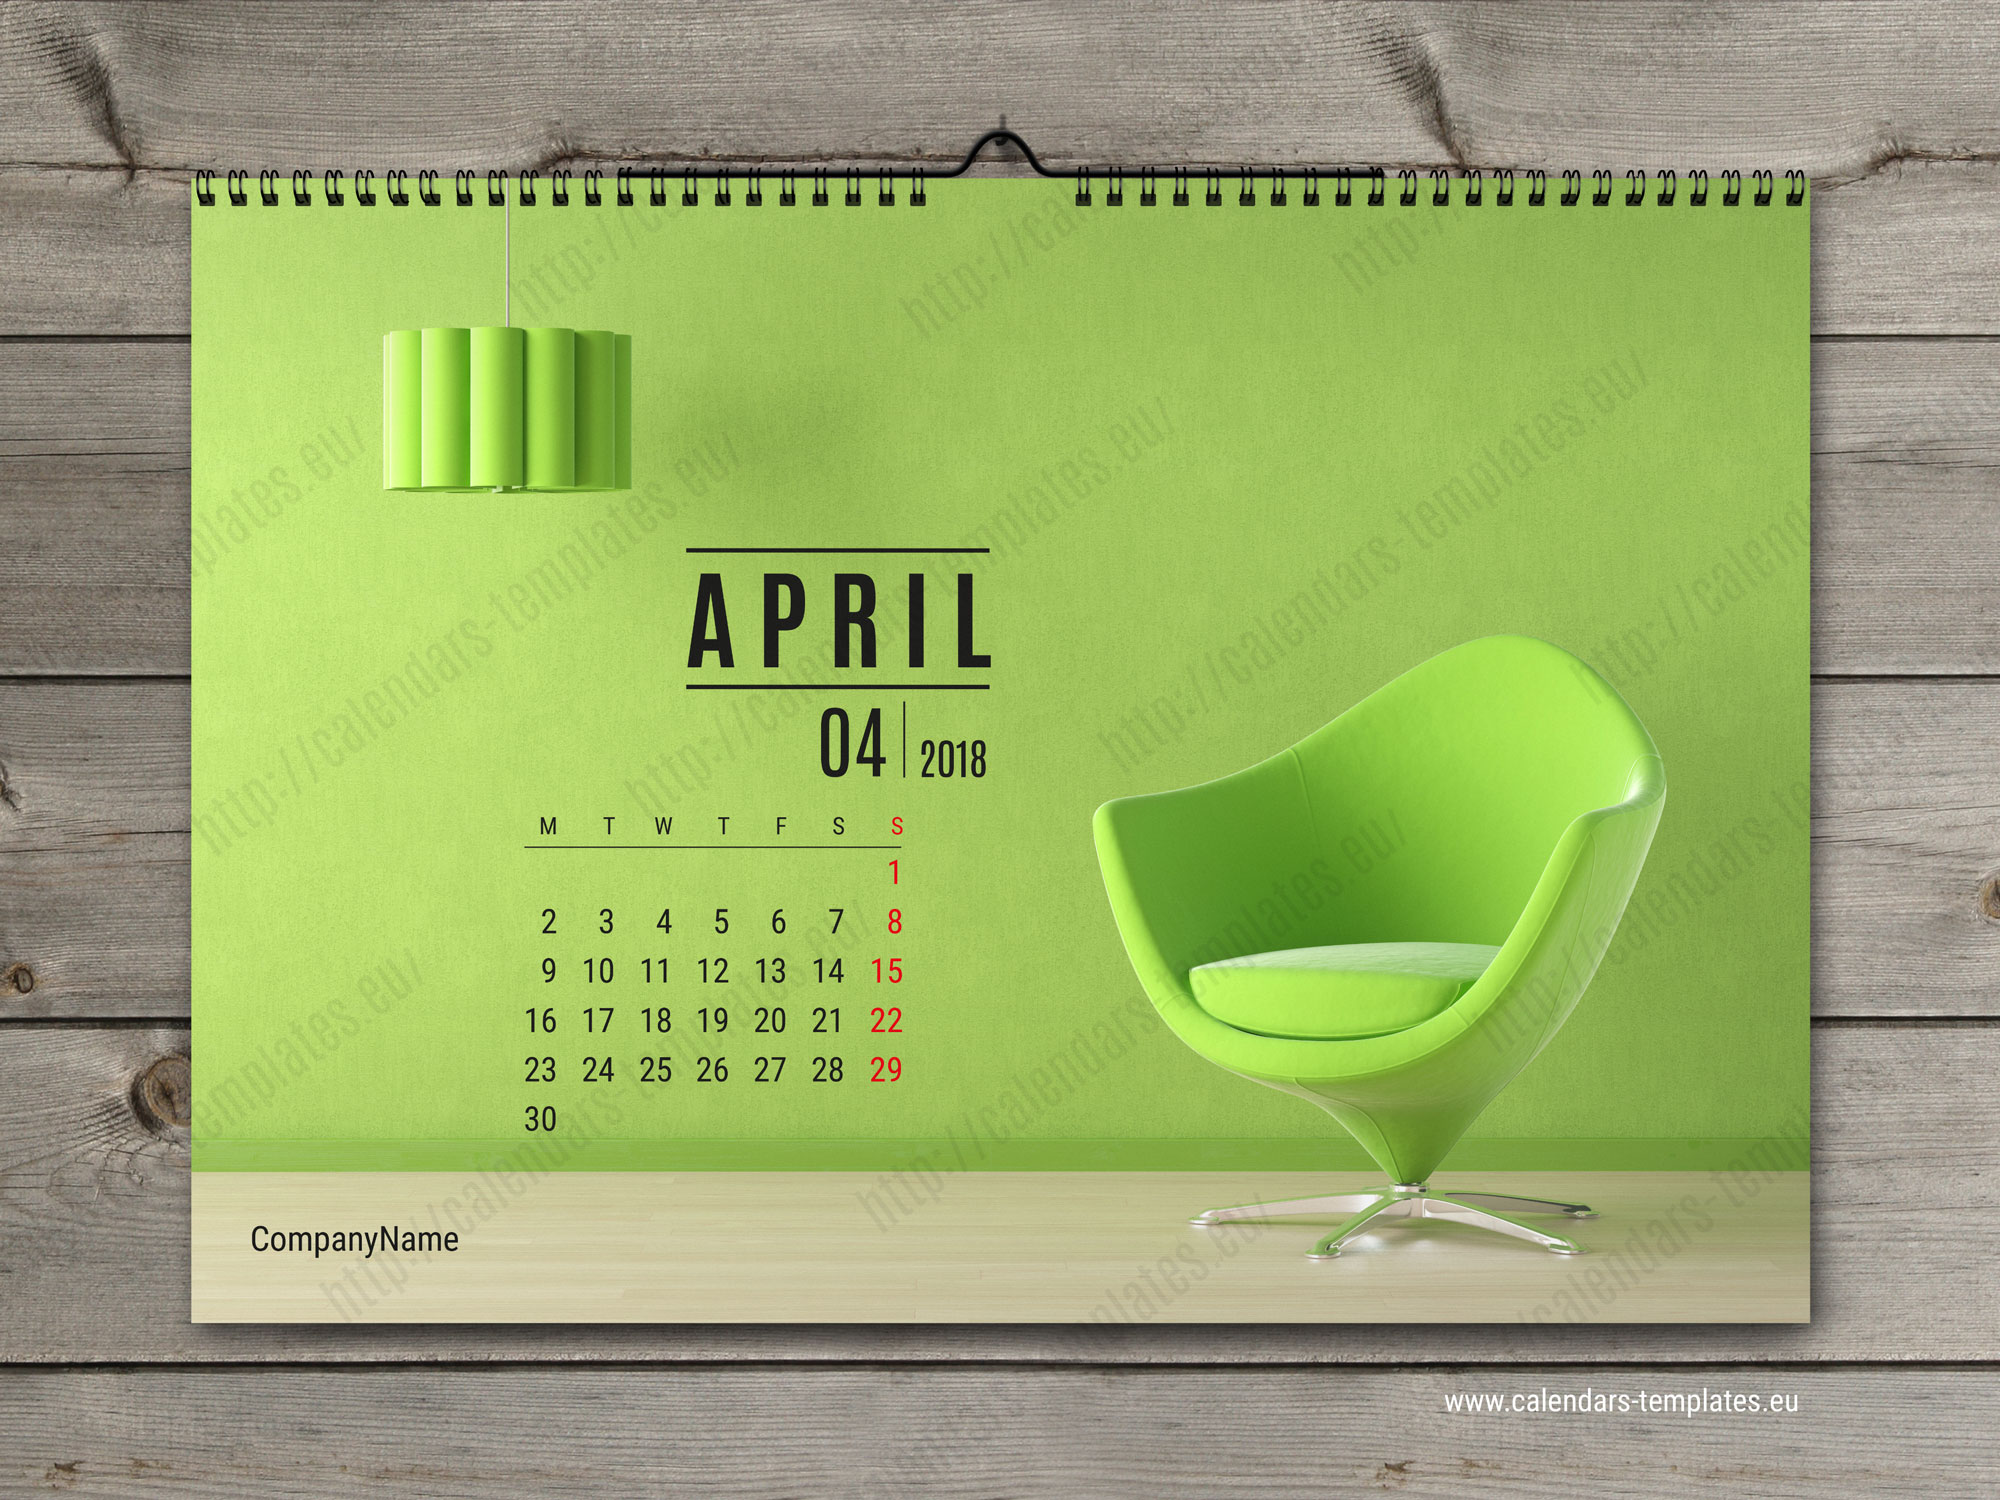 Wall Calendar Design Templates : Monthly calendar template photo wall horizontal